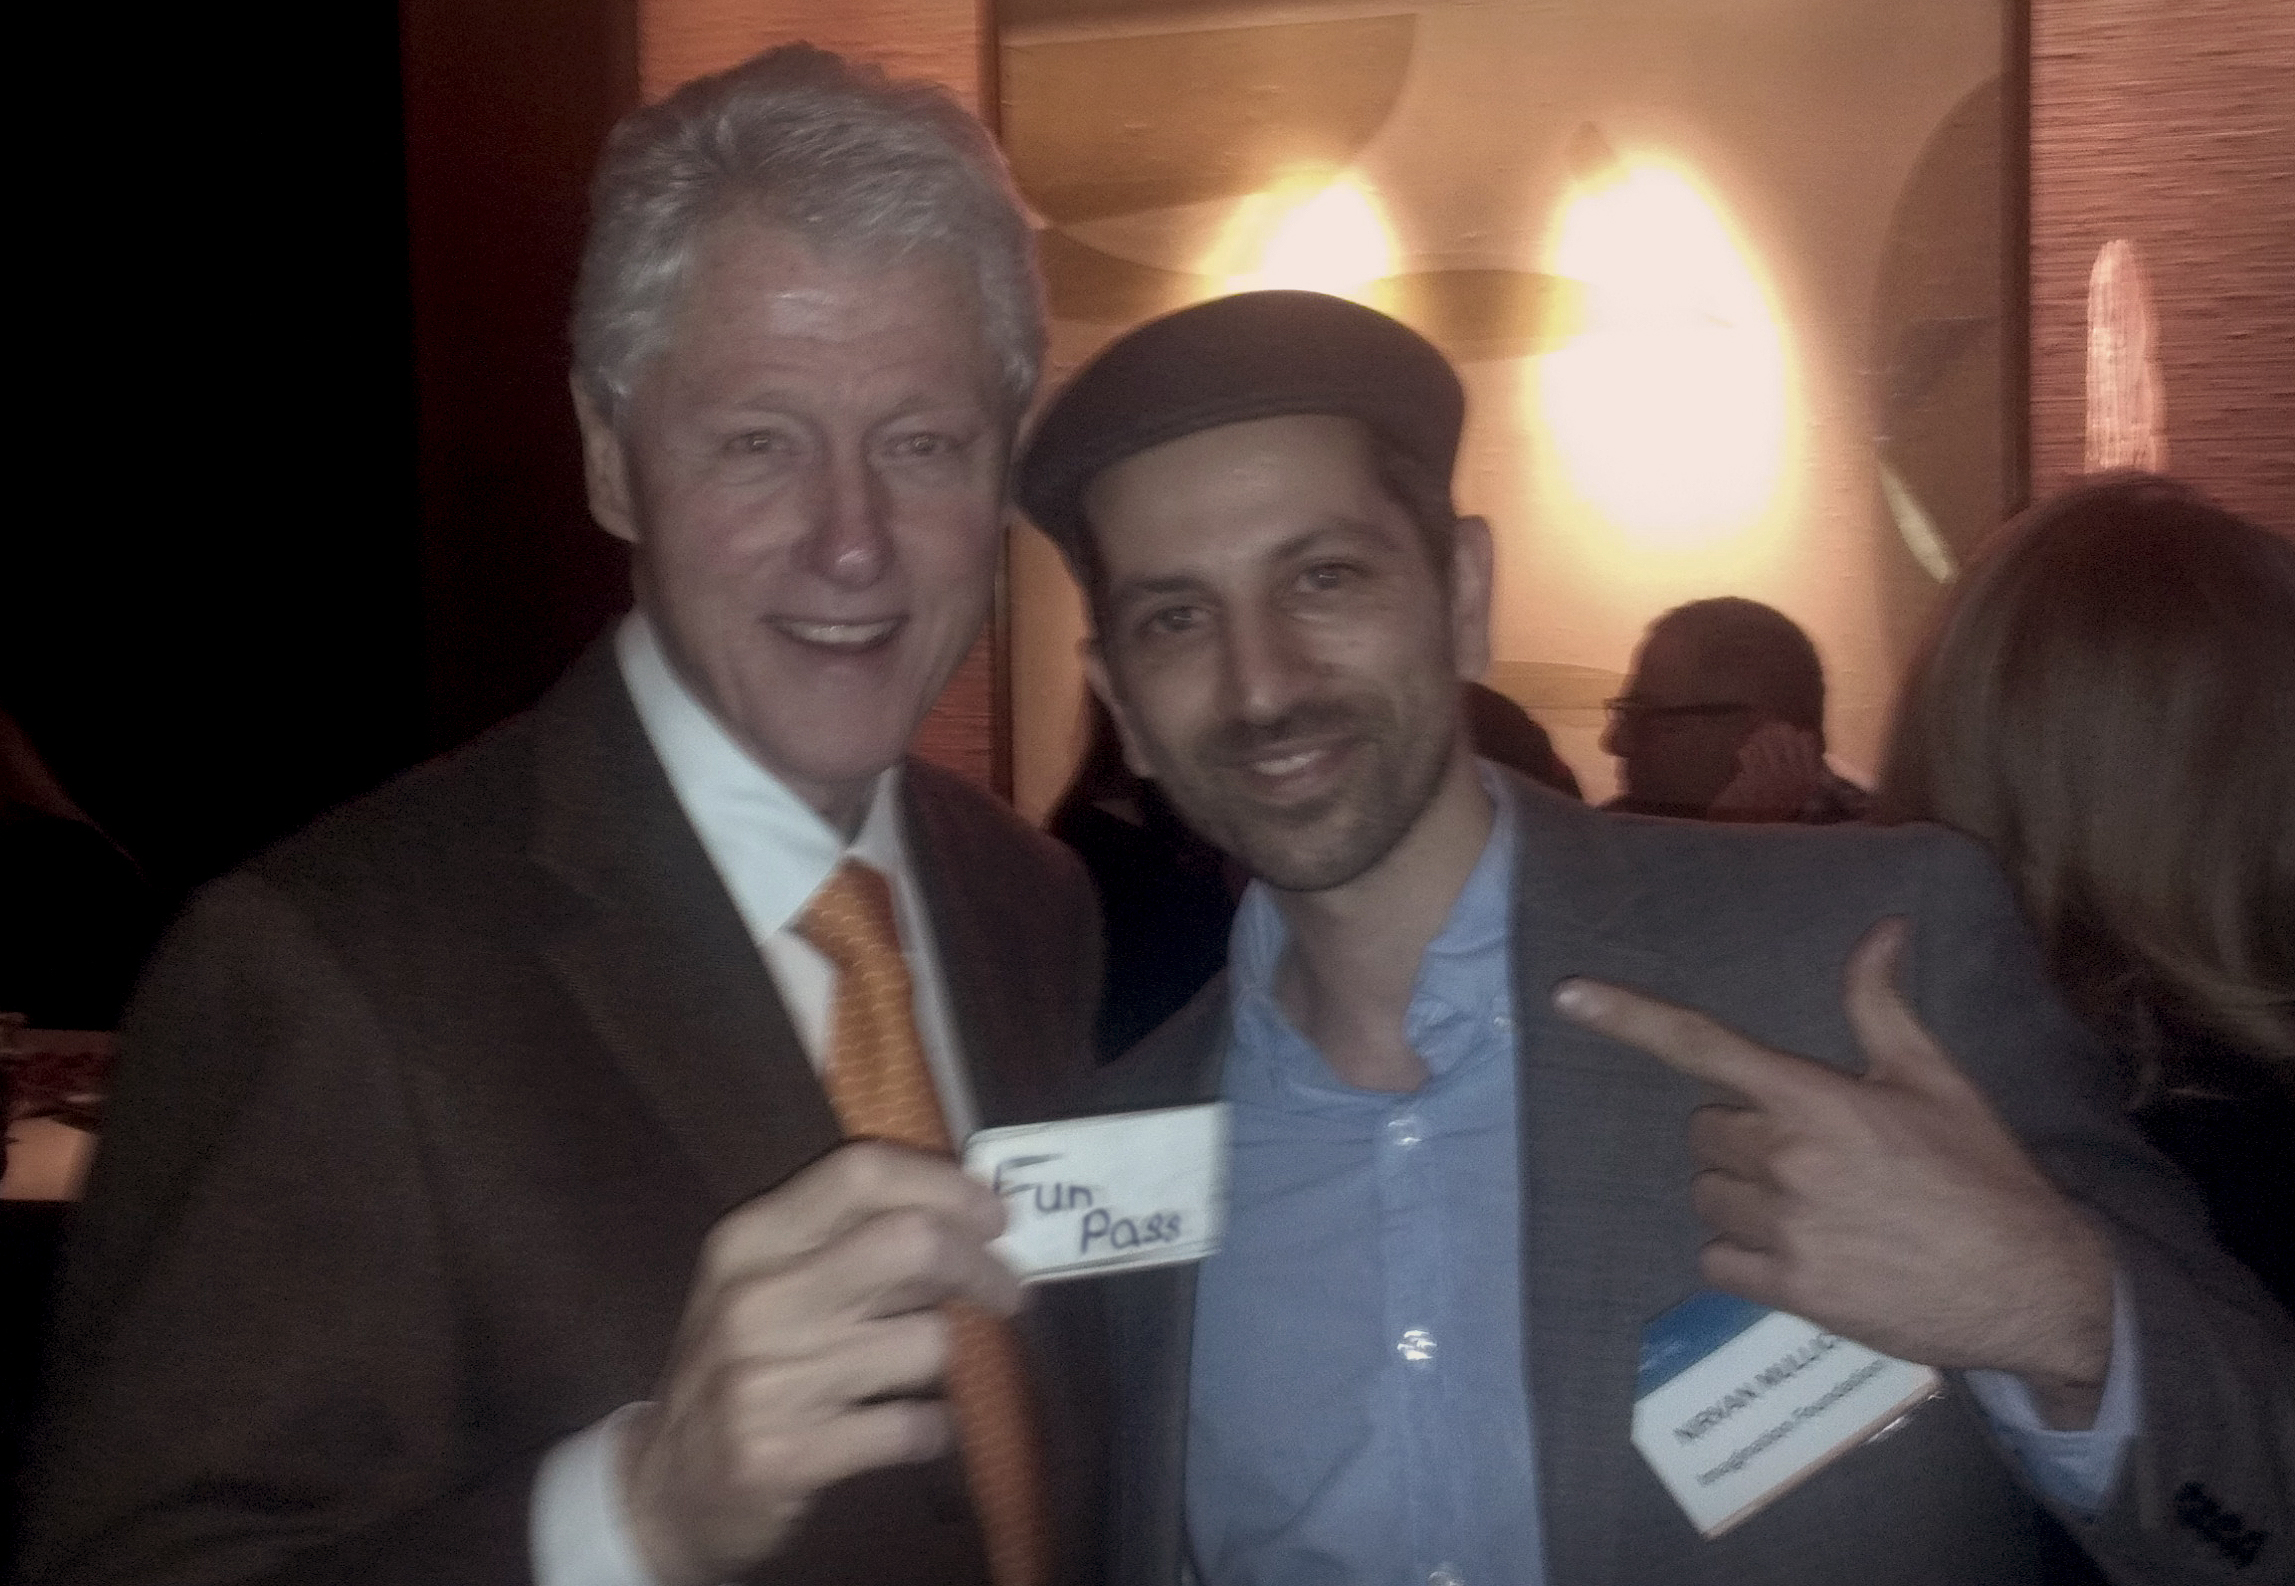 President Bill Clinton and Nirvan Mullick FunPass